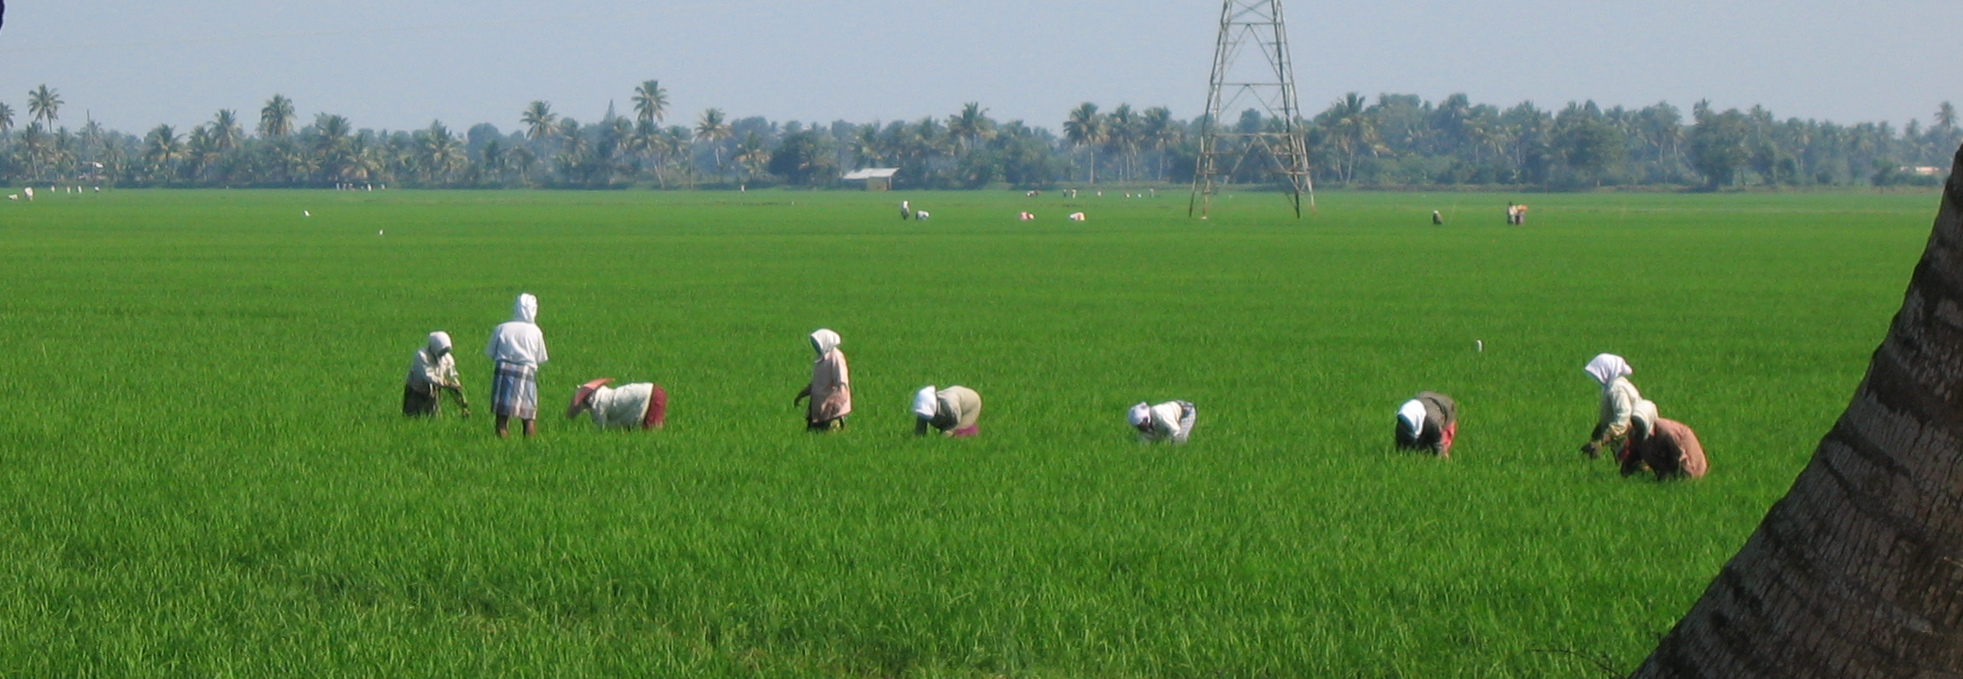 farming subsistence rice growing in india The agriculture sector of india, in some areas, is highly  pulses second largest  producer of rice, wheat, fruits, vegetables and overall third largest  the high  growth trajectories and continue to depend on subsistence farming.